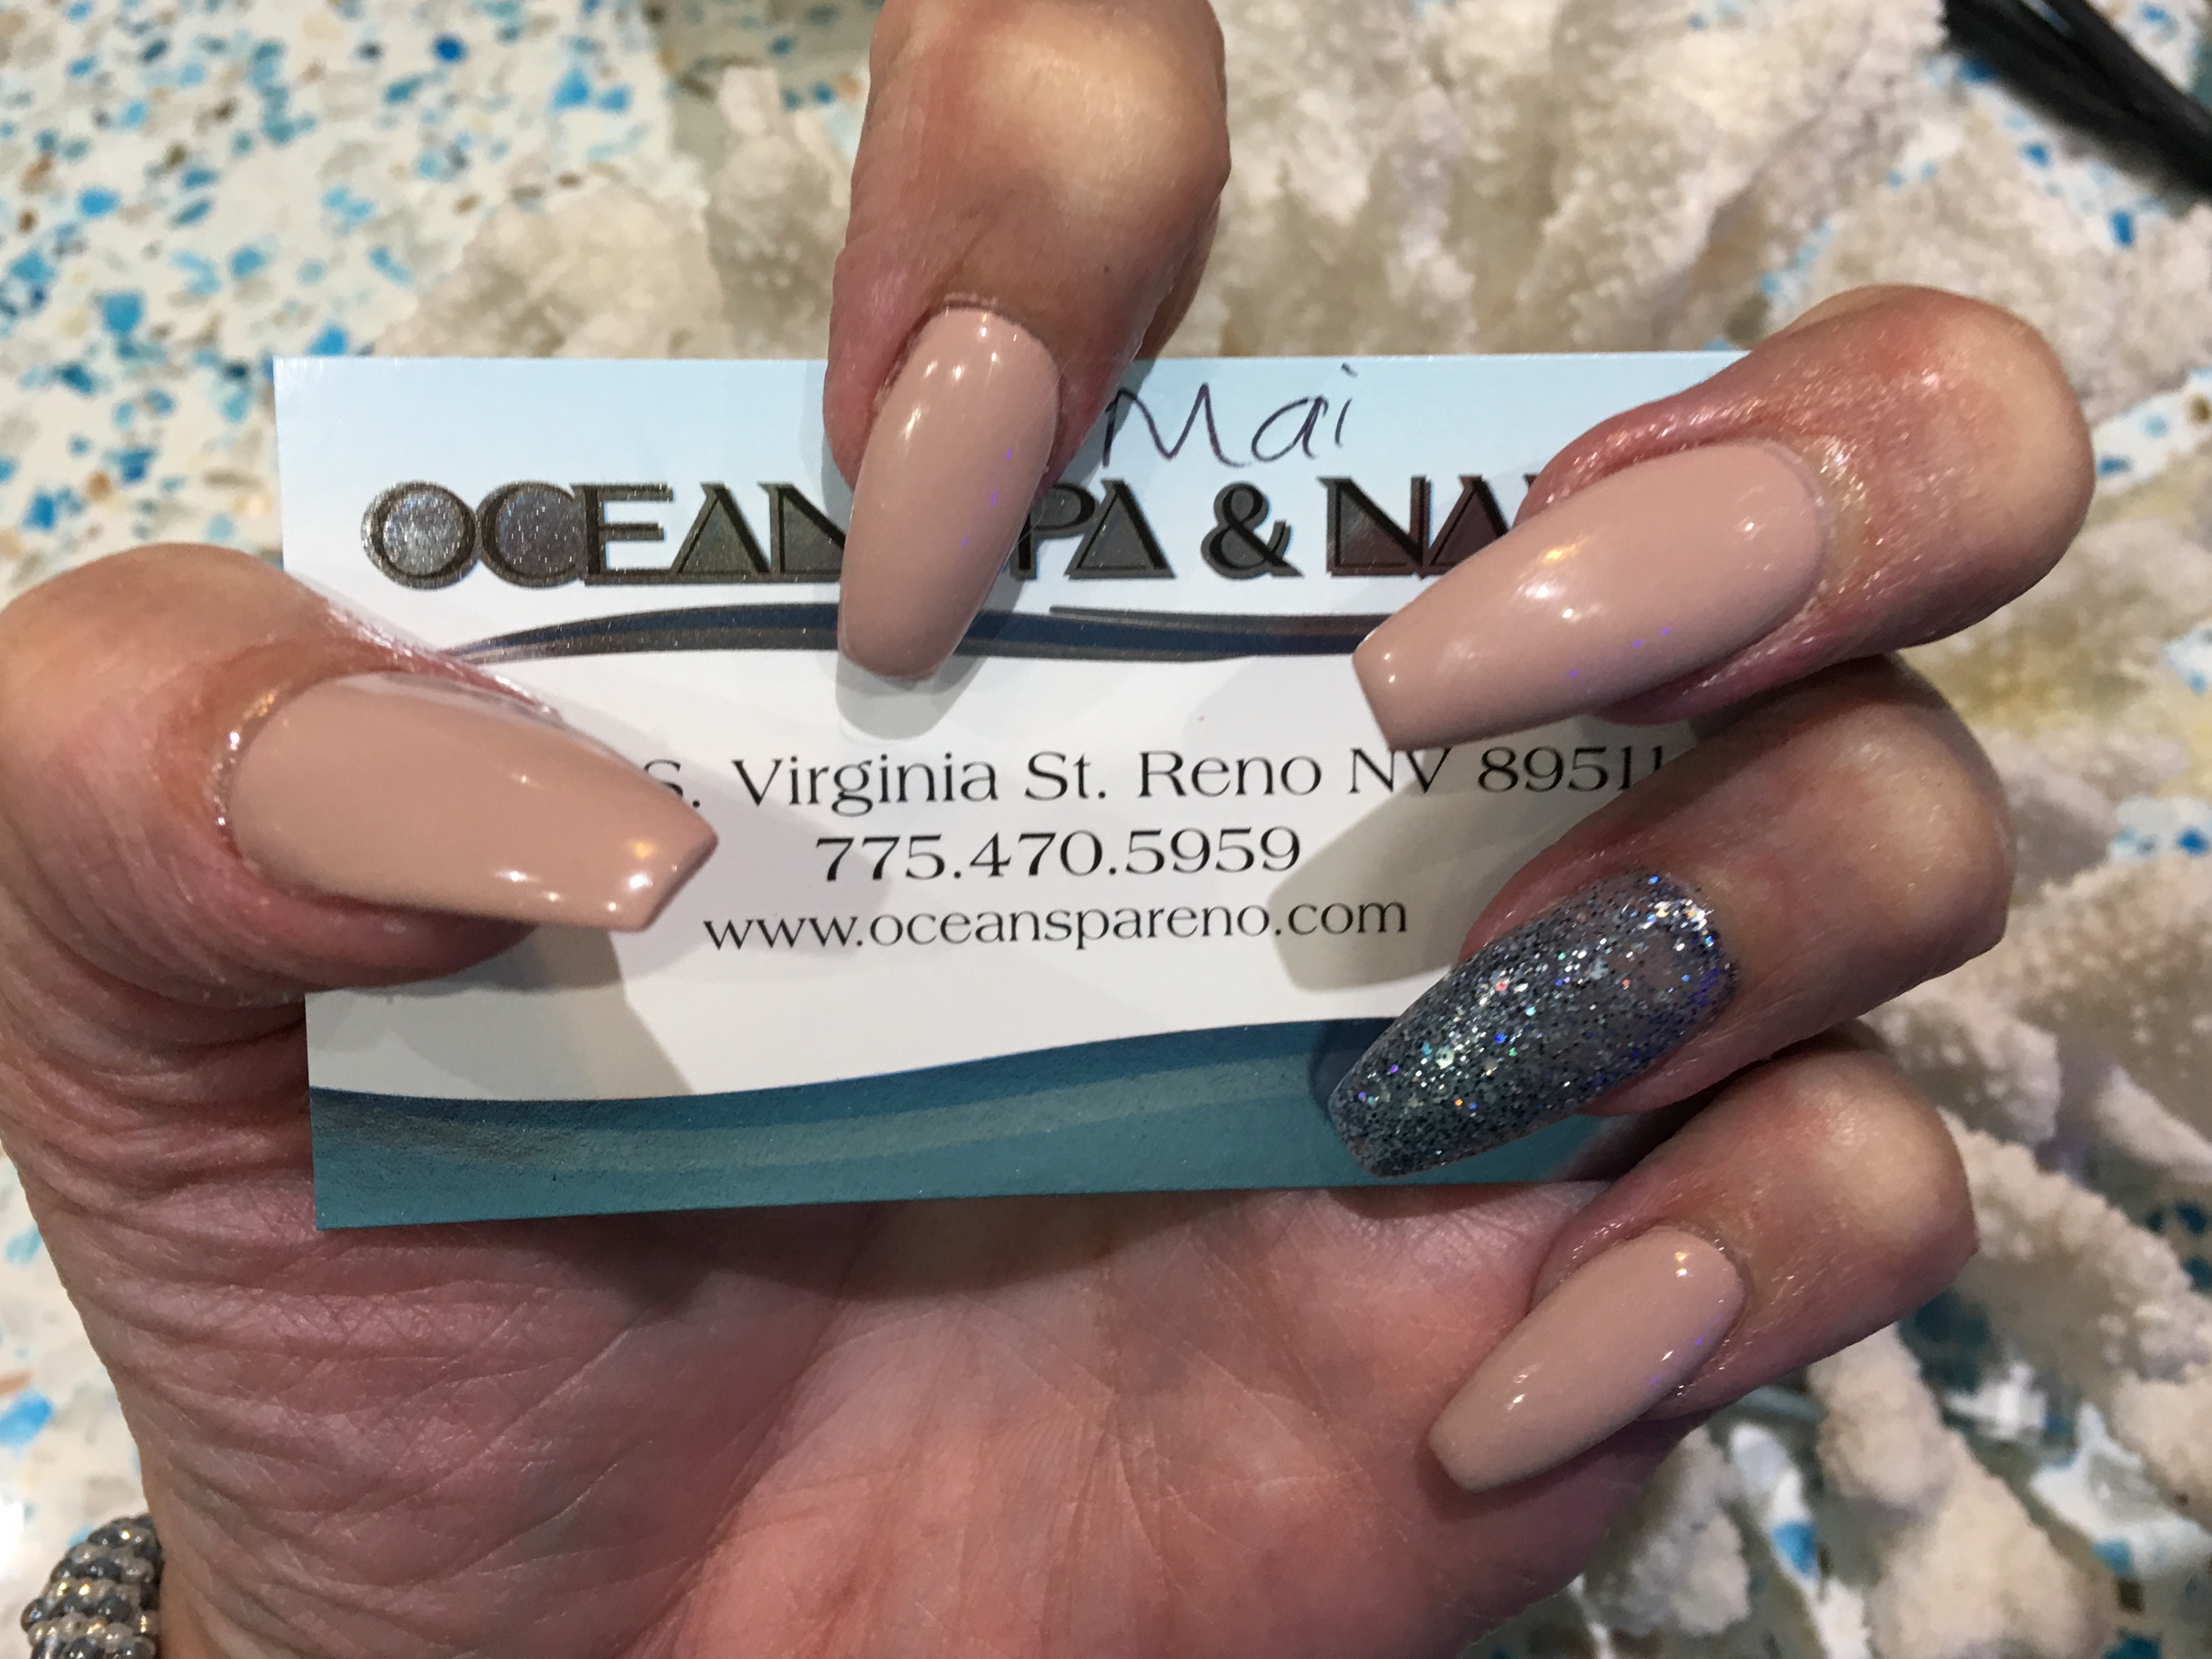 Ocean Spa And Nails 6459 S Virginia St, Reno, NV 89511 - YP.com